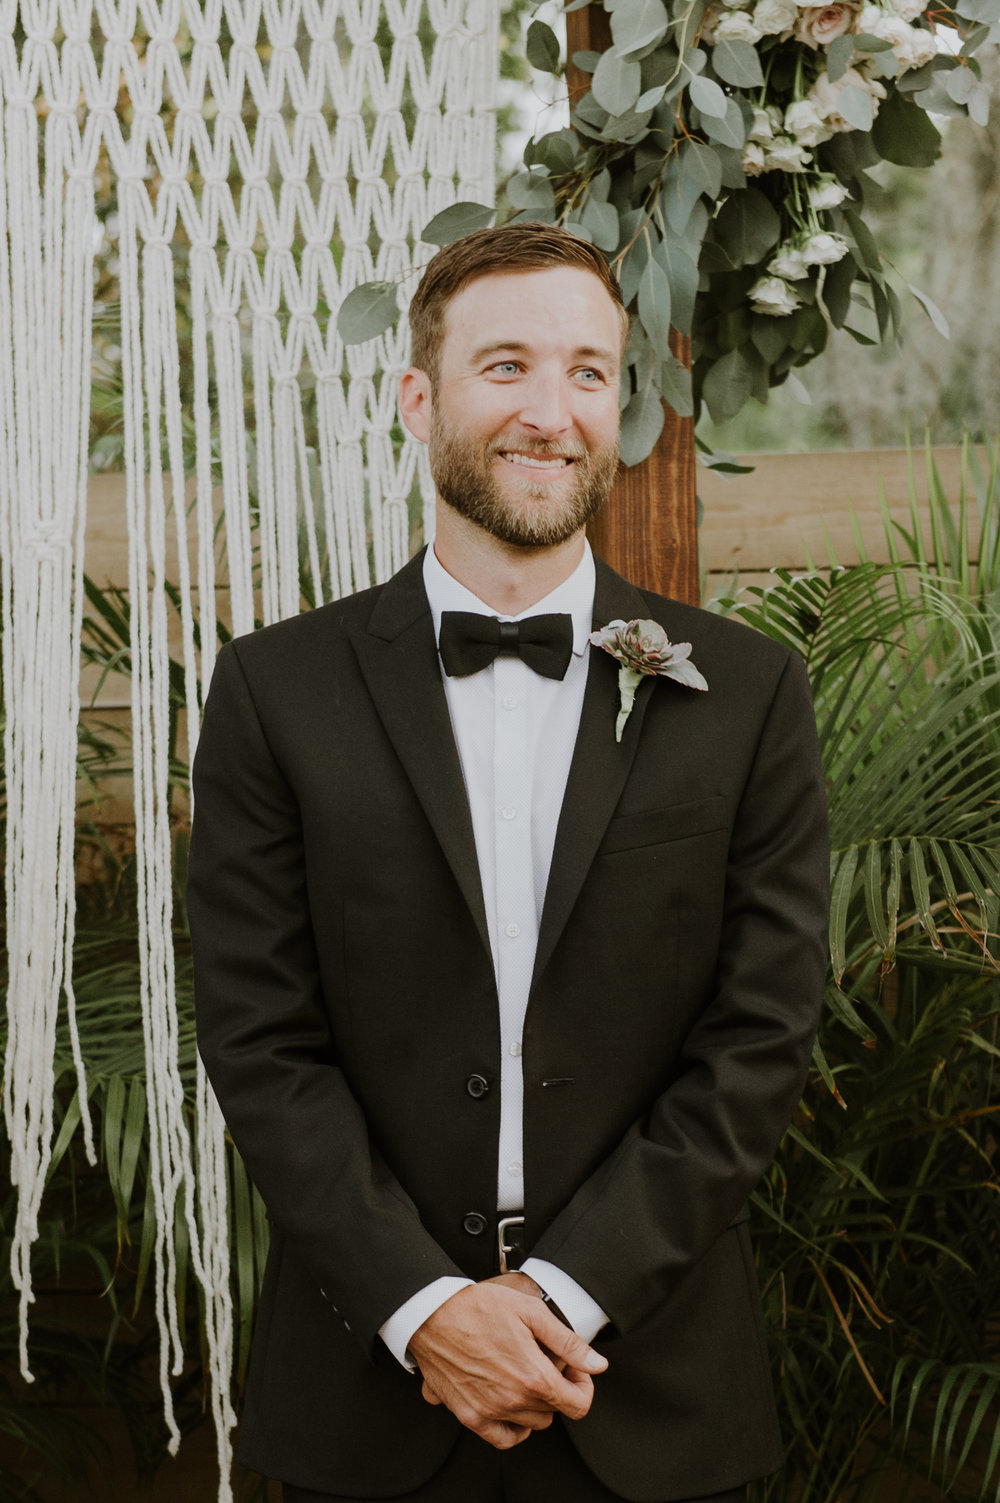 Drew threw on a sharp black suit jacket and donned a boutonniere to instantly look the part of the groom.